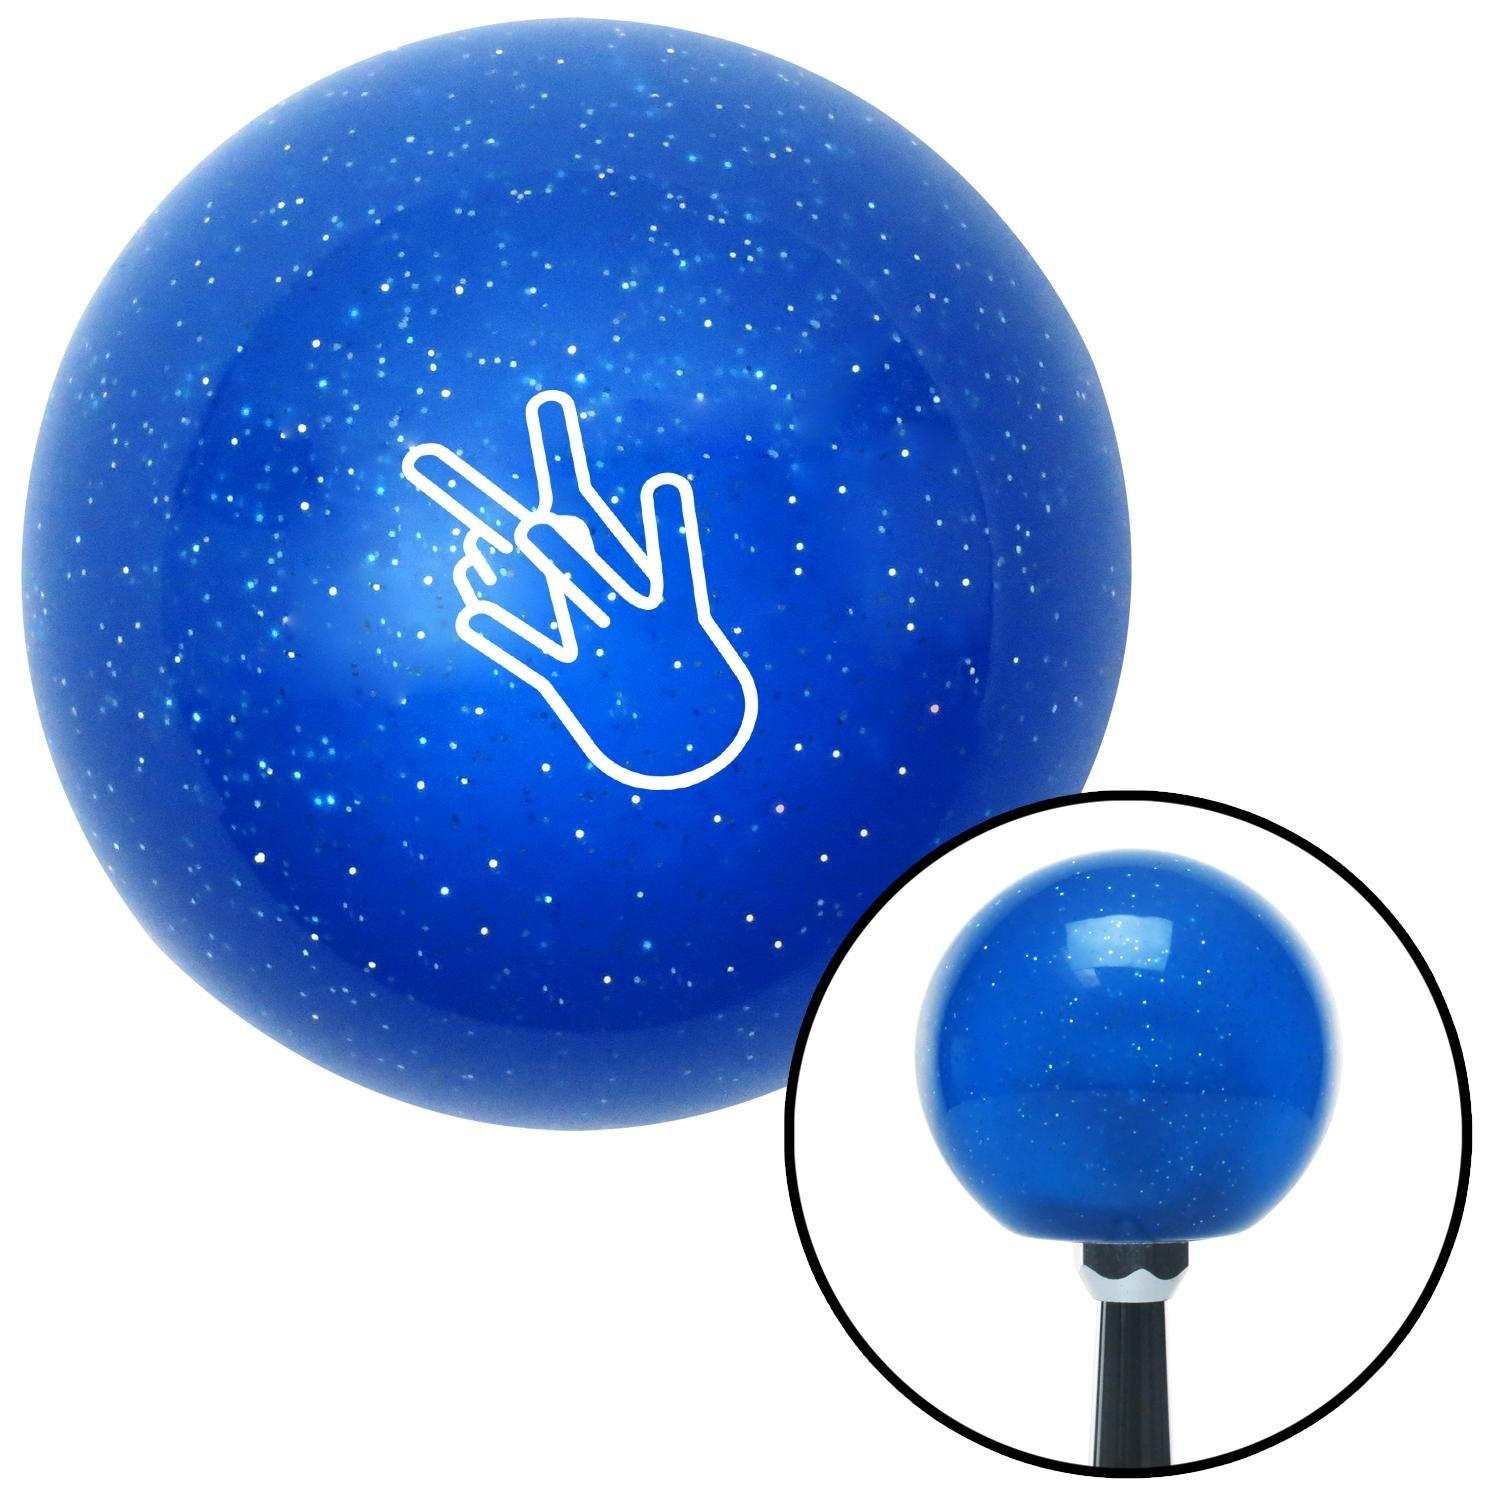 American Shifter 277138 Shift Knob White VW Hands Blue Metal Flake with M16 x 1.5 Insert